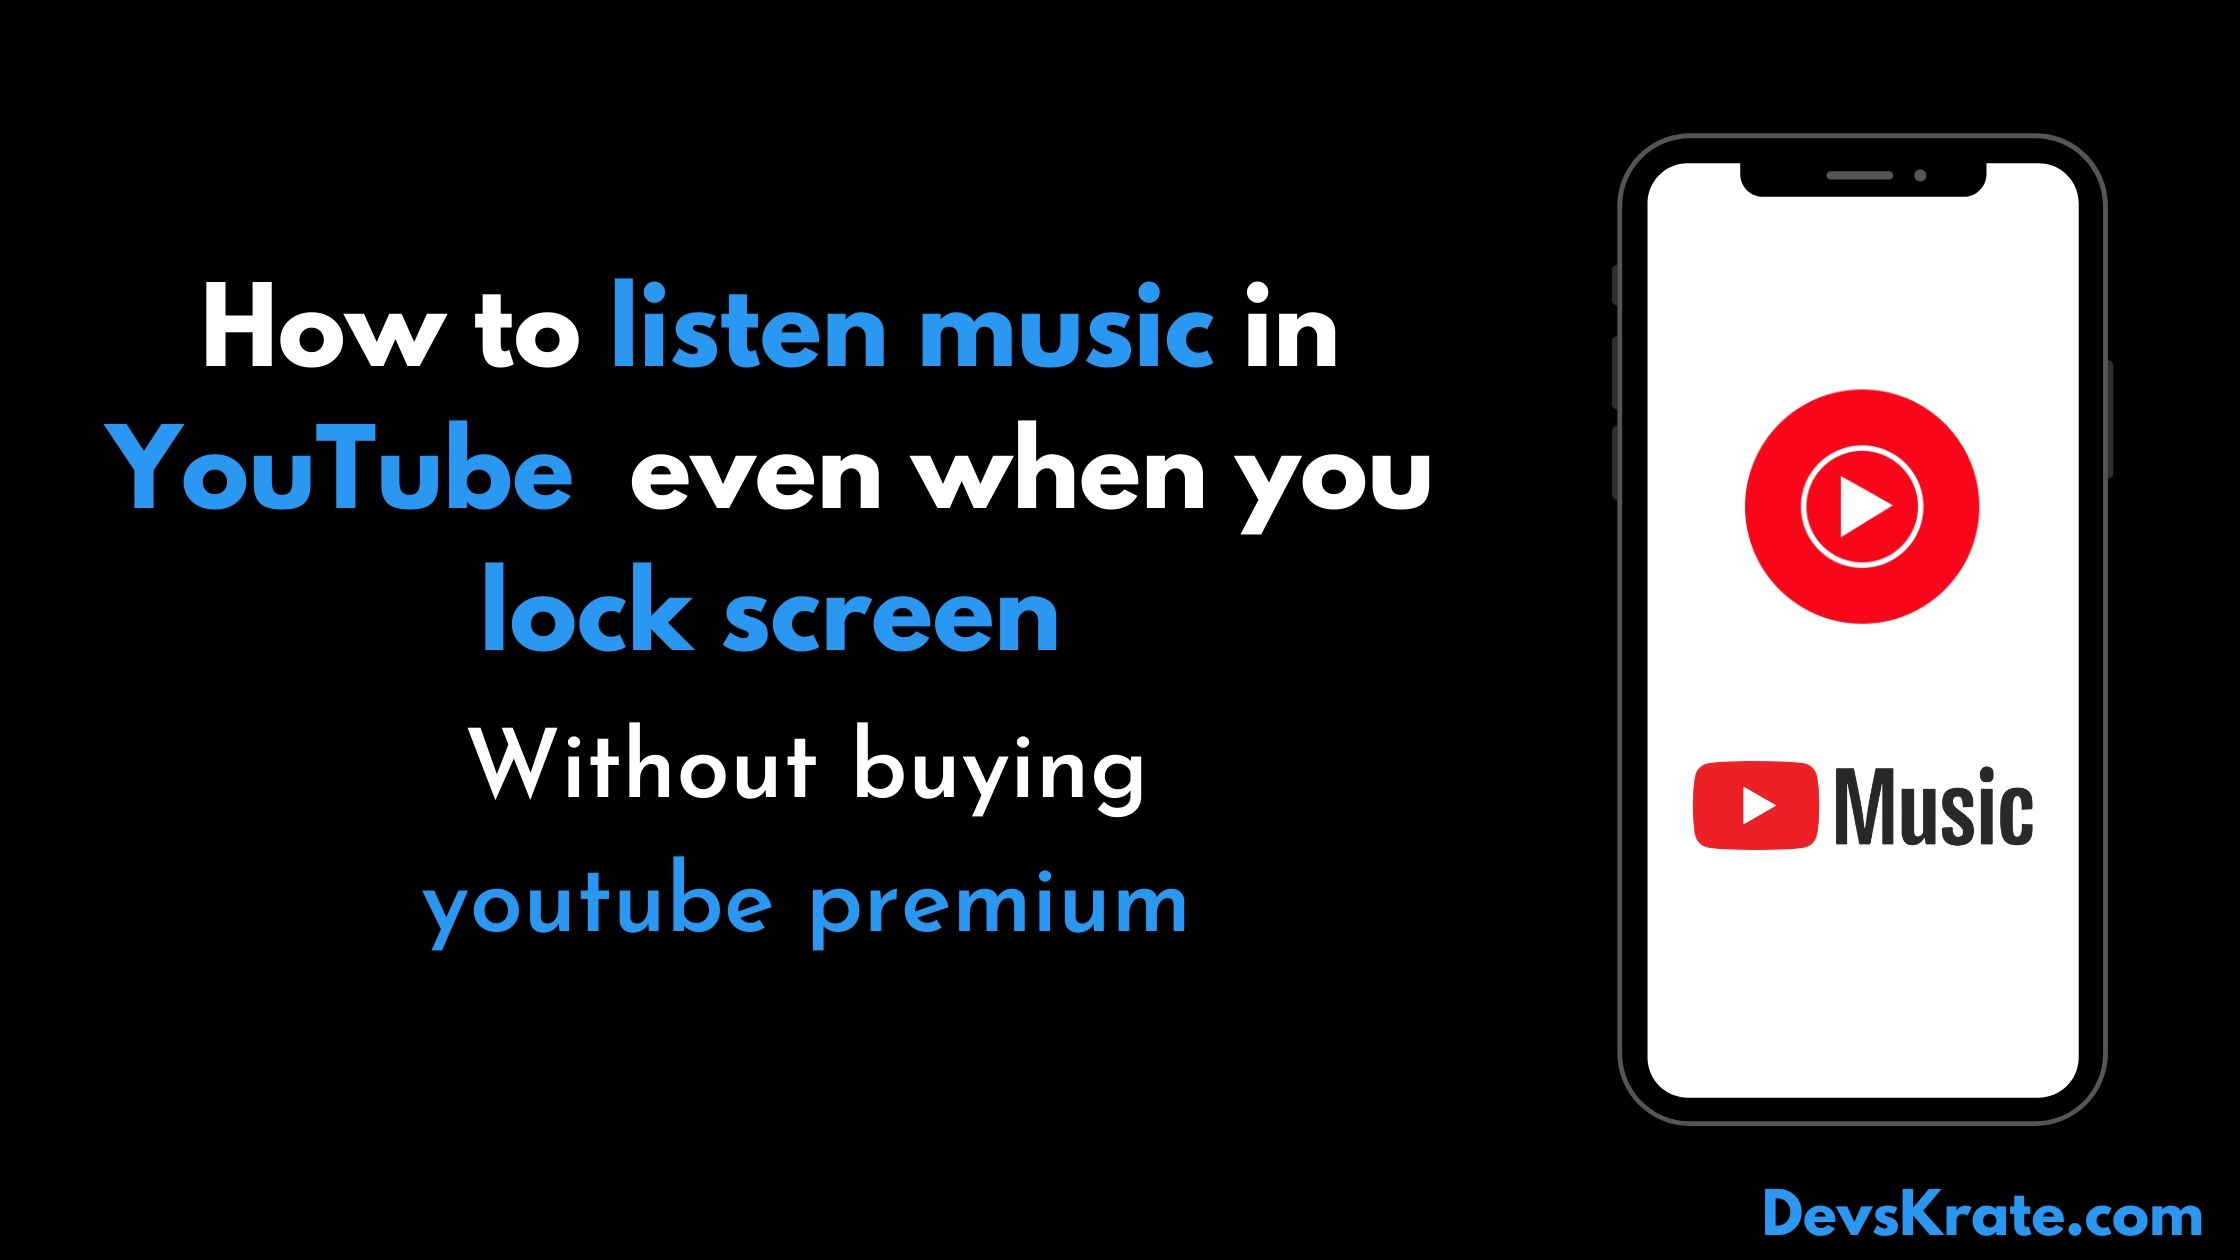 How to listen music in YouTube even in lockscreen in phone